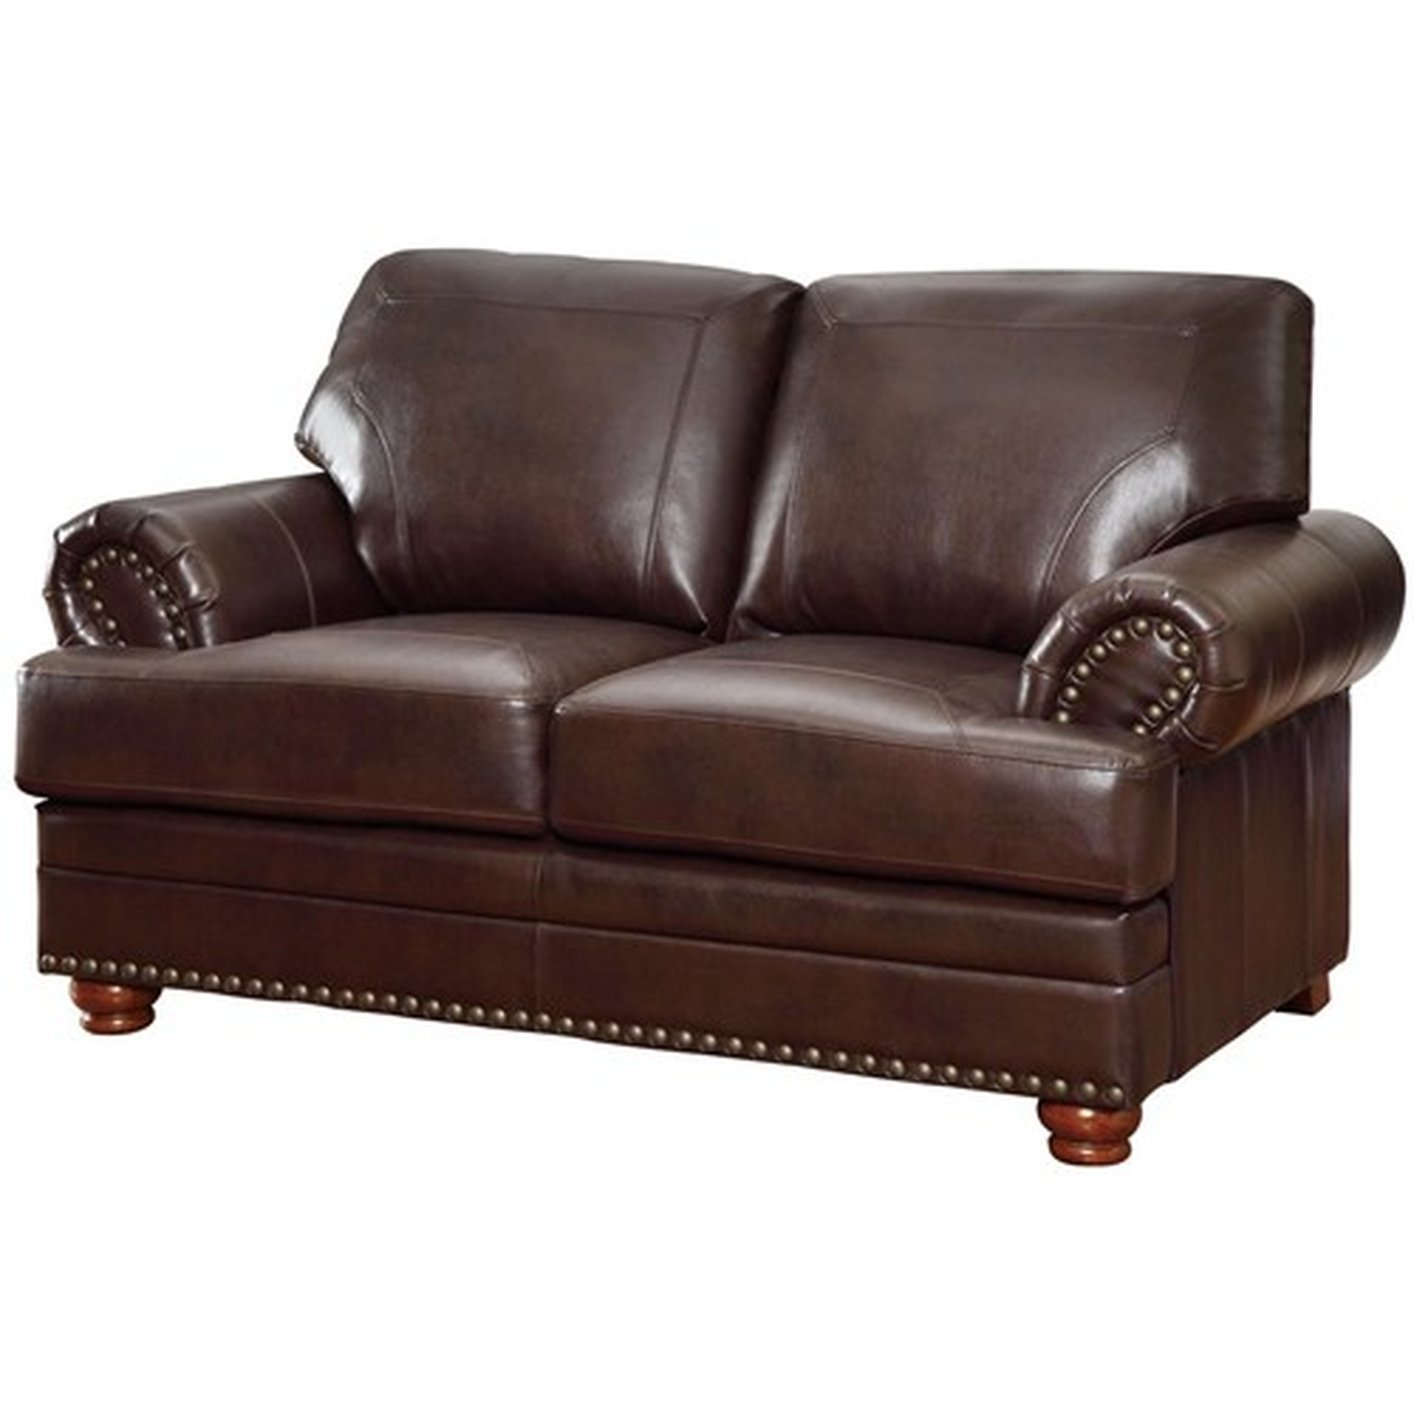 Leather Loveseat Coaster Colton 504412 Brown Leather Loveseat Steal A